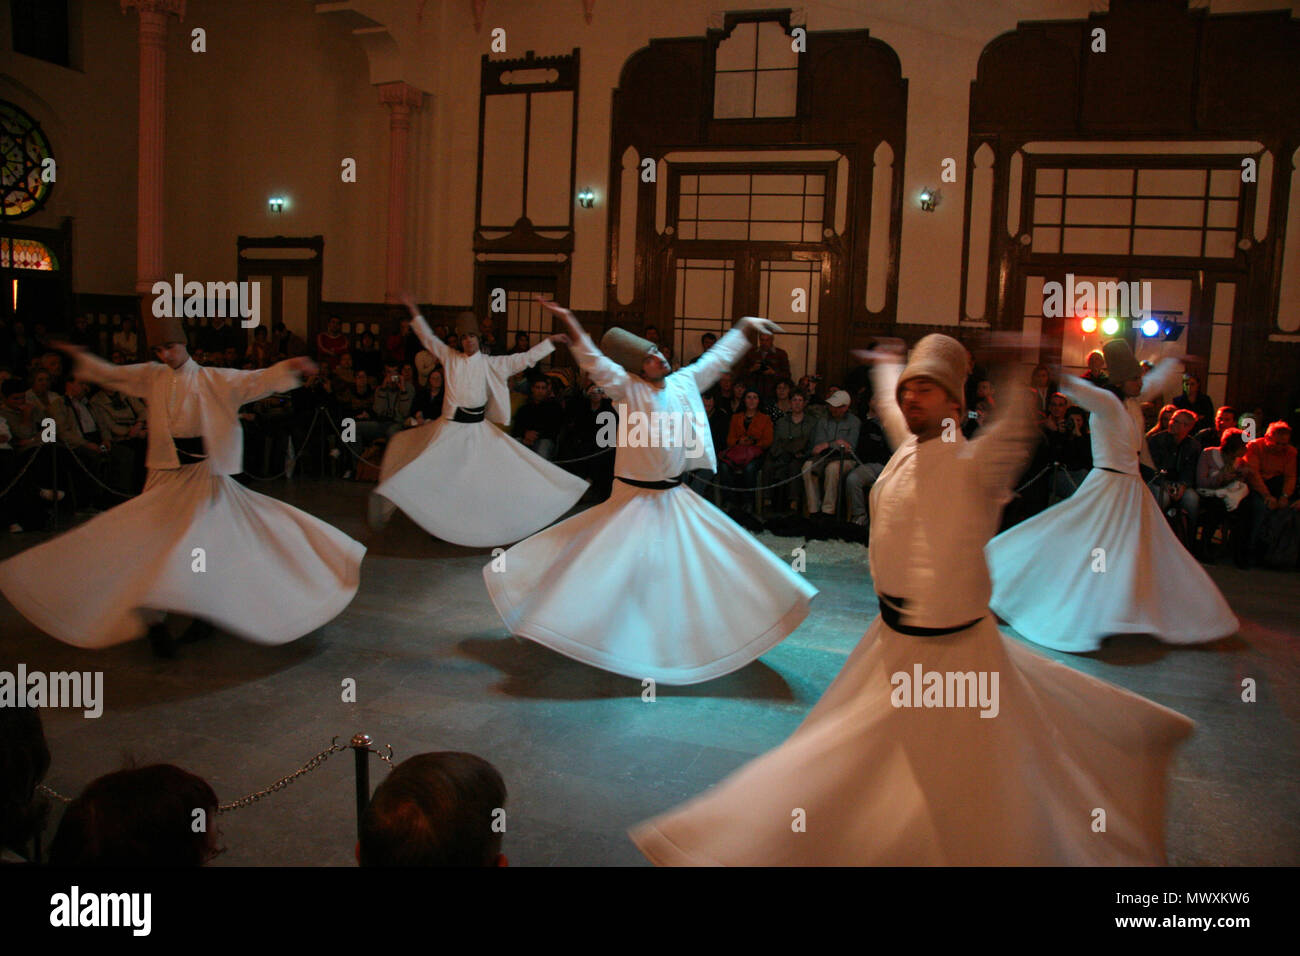 whirling dervishes dancing in traditional turkish dervish costume in istanbul - Stock Image